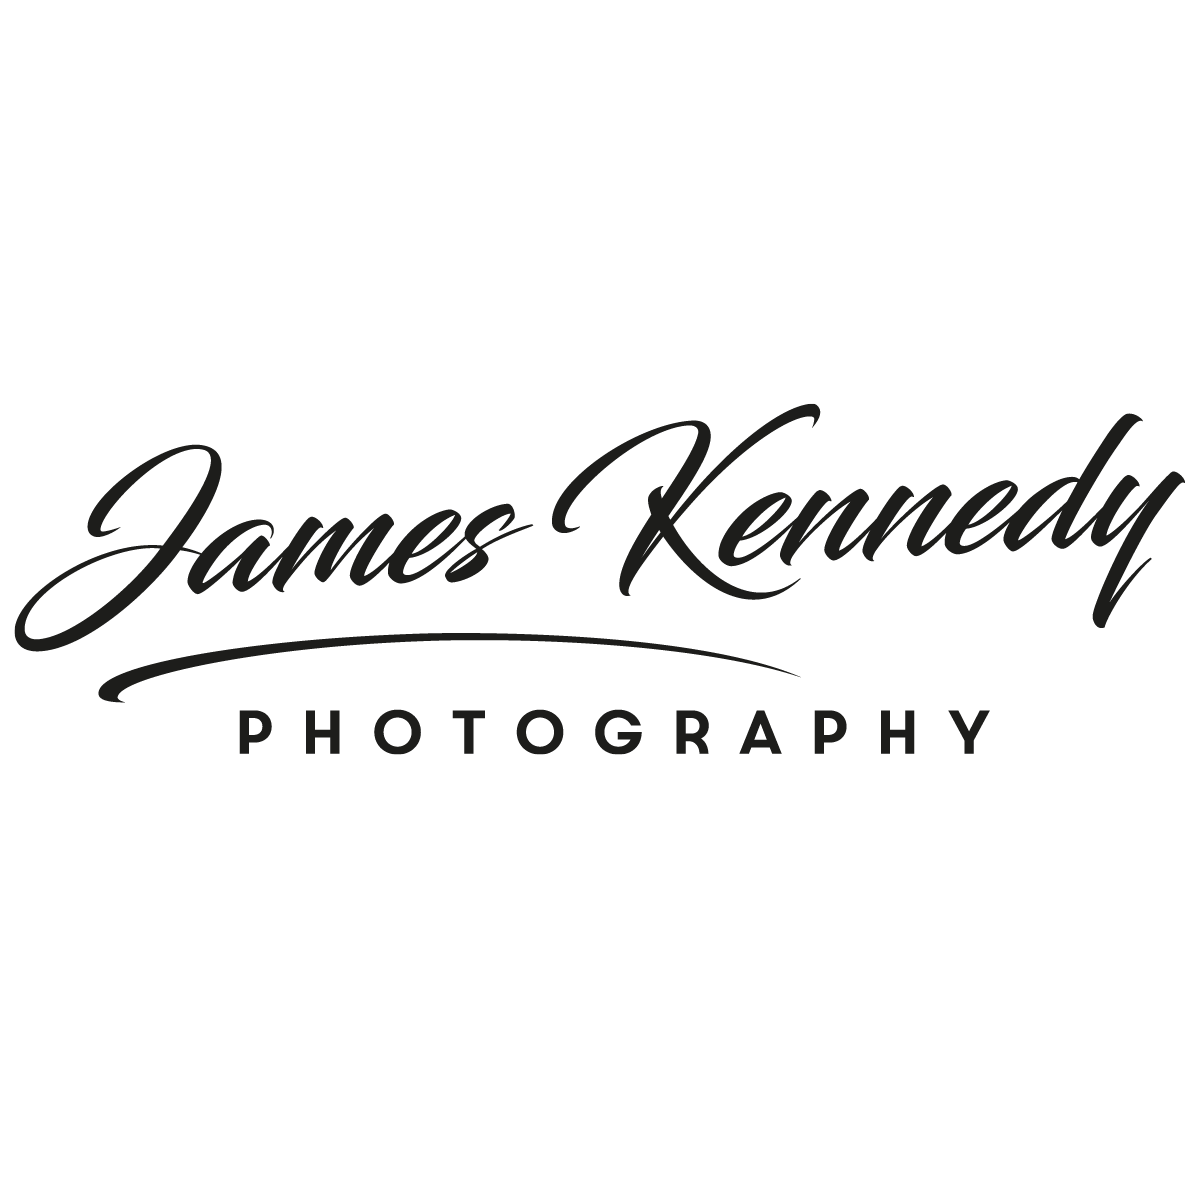 James Kennedy Photography